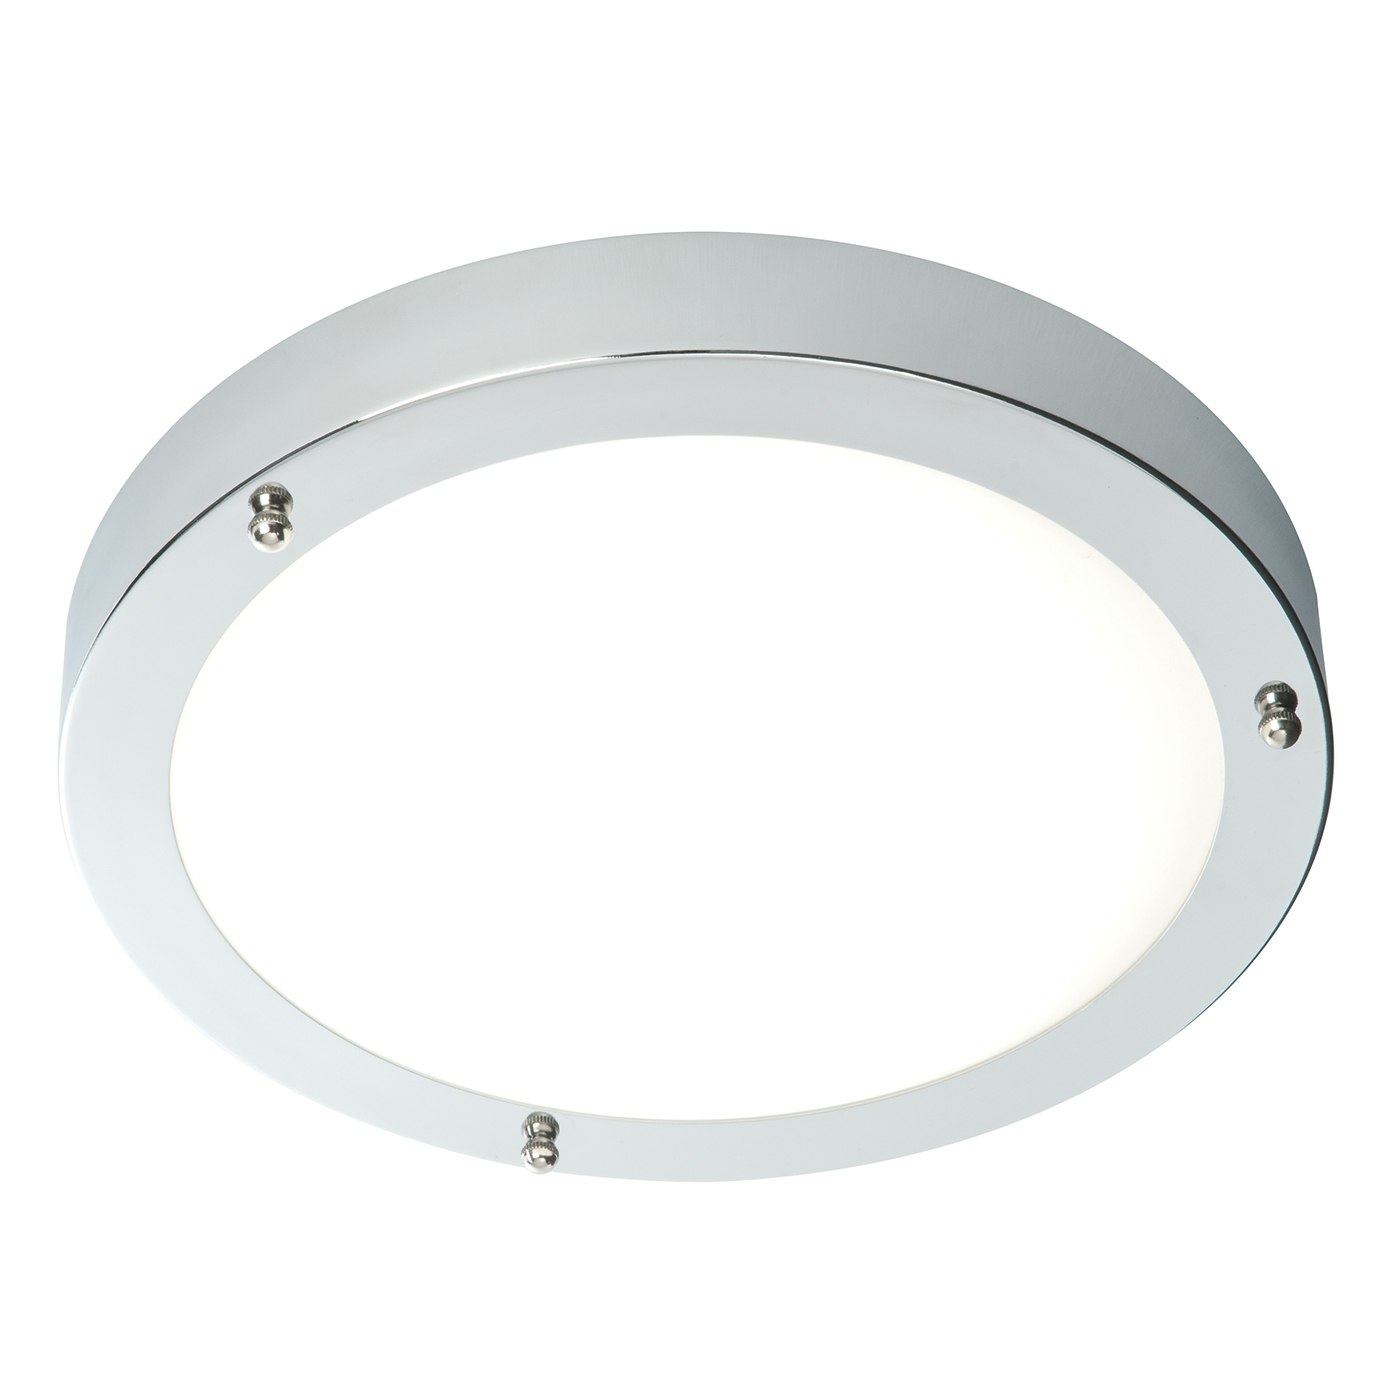 Endon Portico 300mm flush bathroom ceiling light IP44 60W chrome glass Thumbnail 1